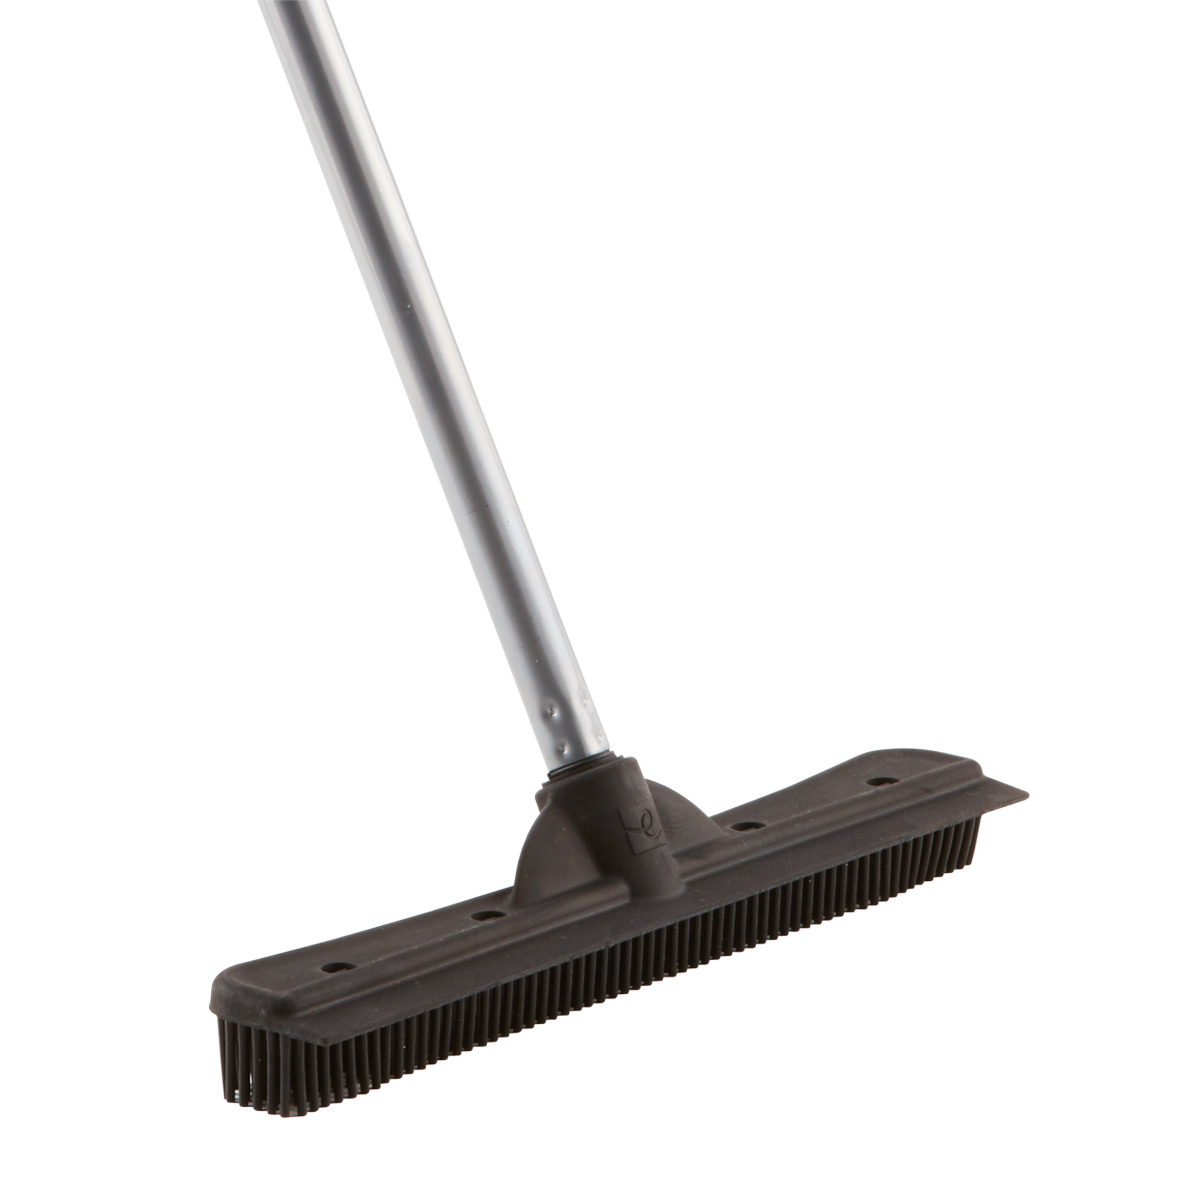 All-Terrain Broom & Squeegee